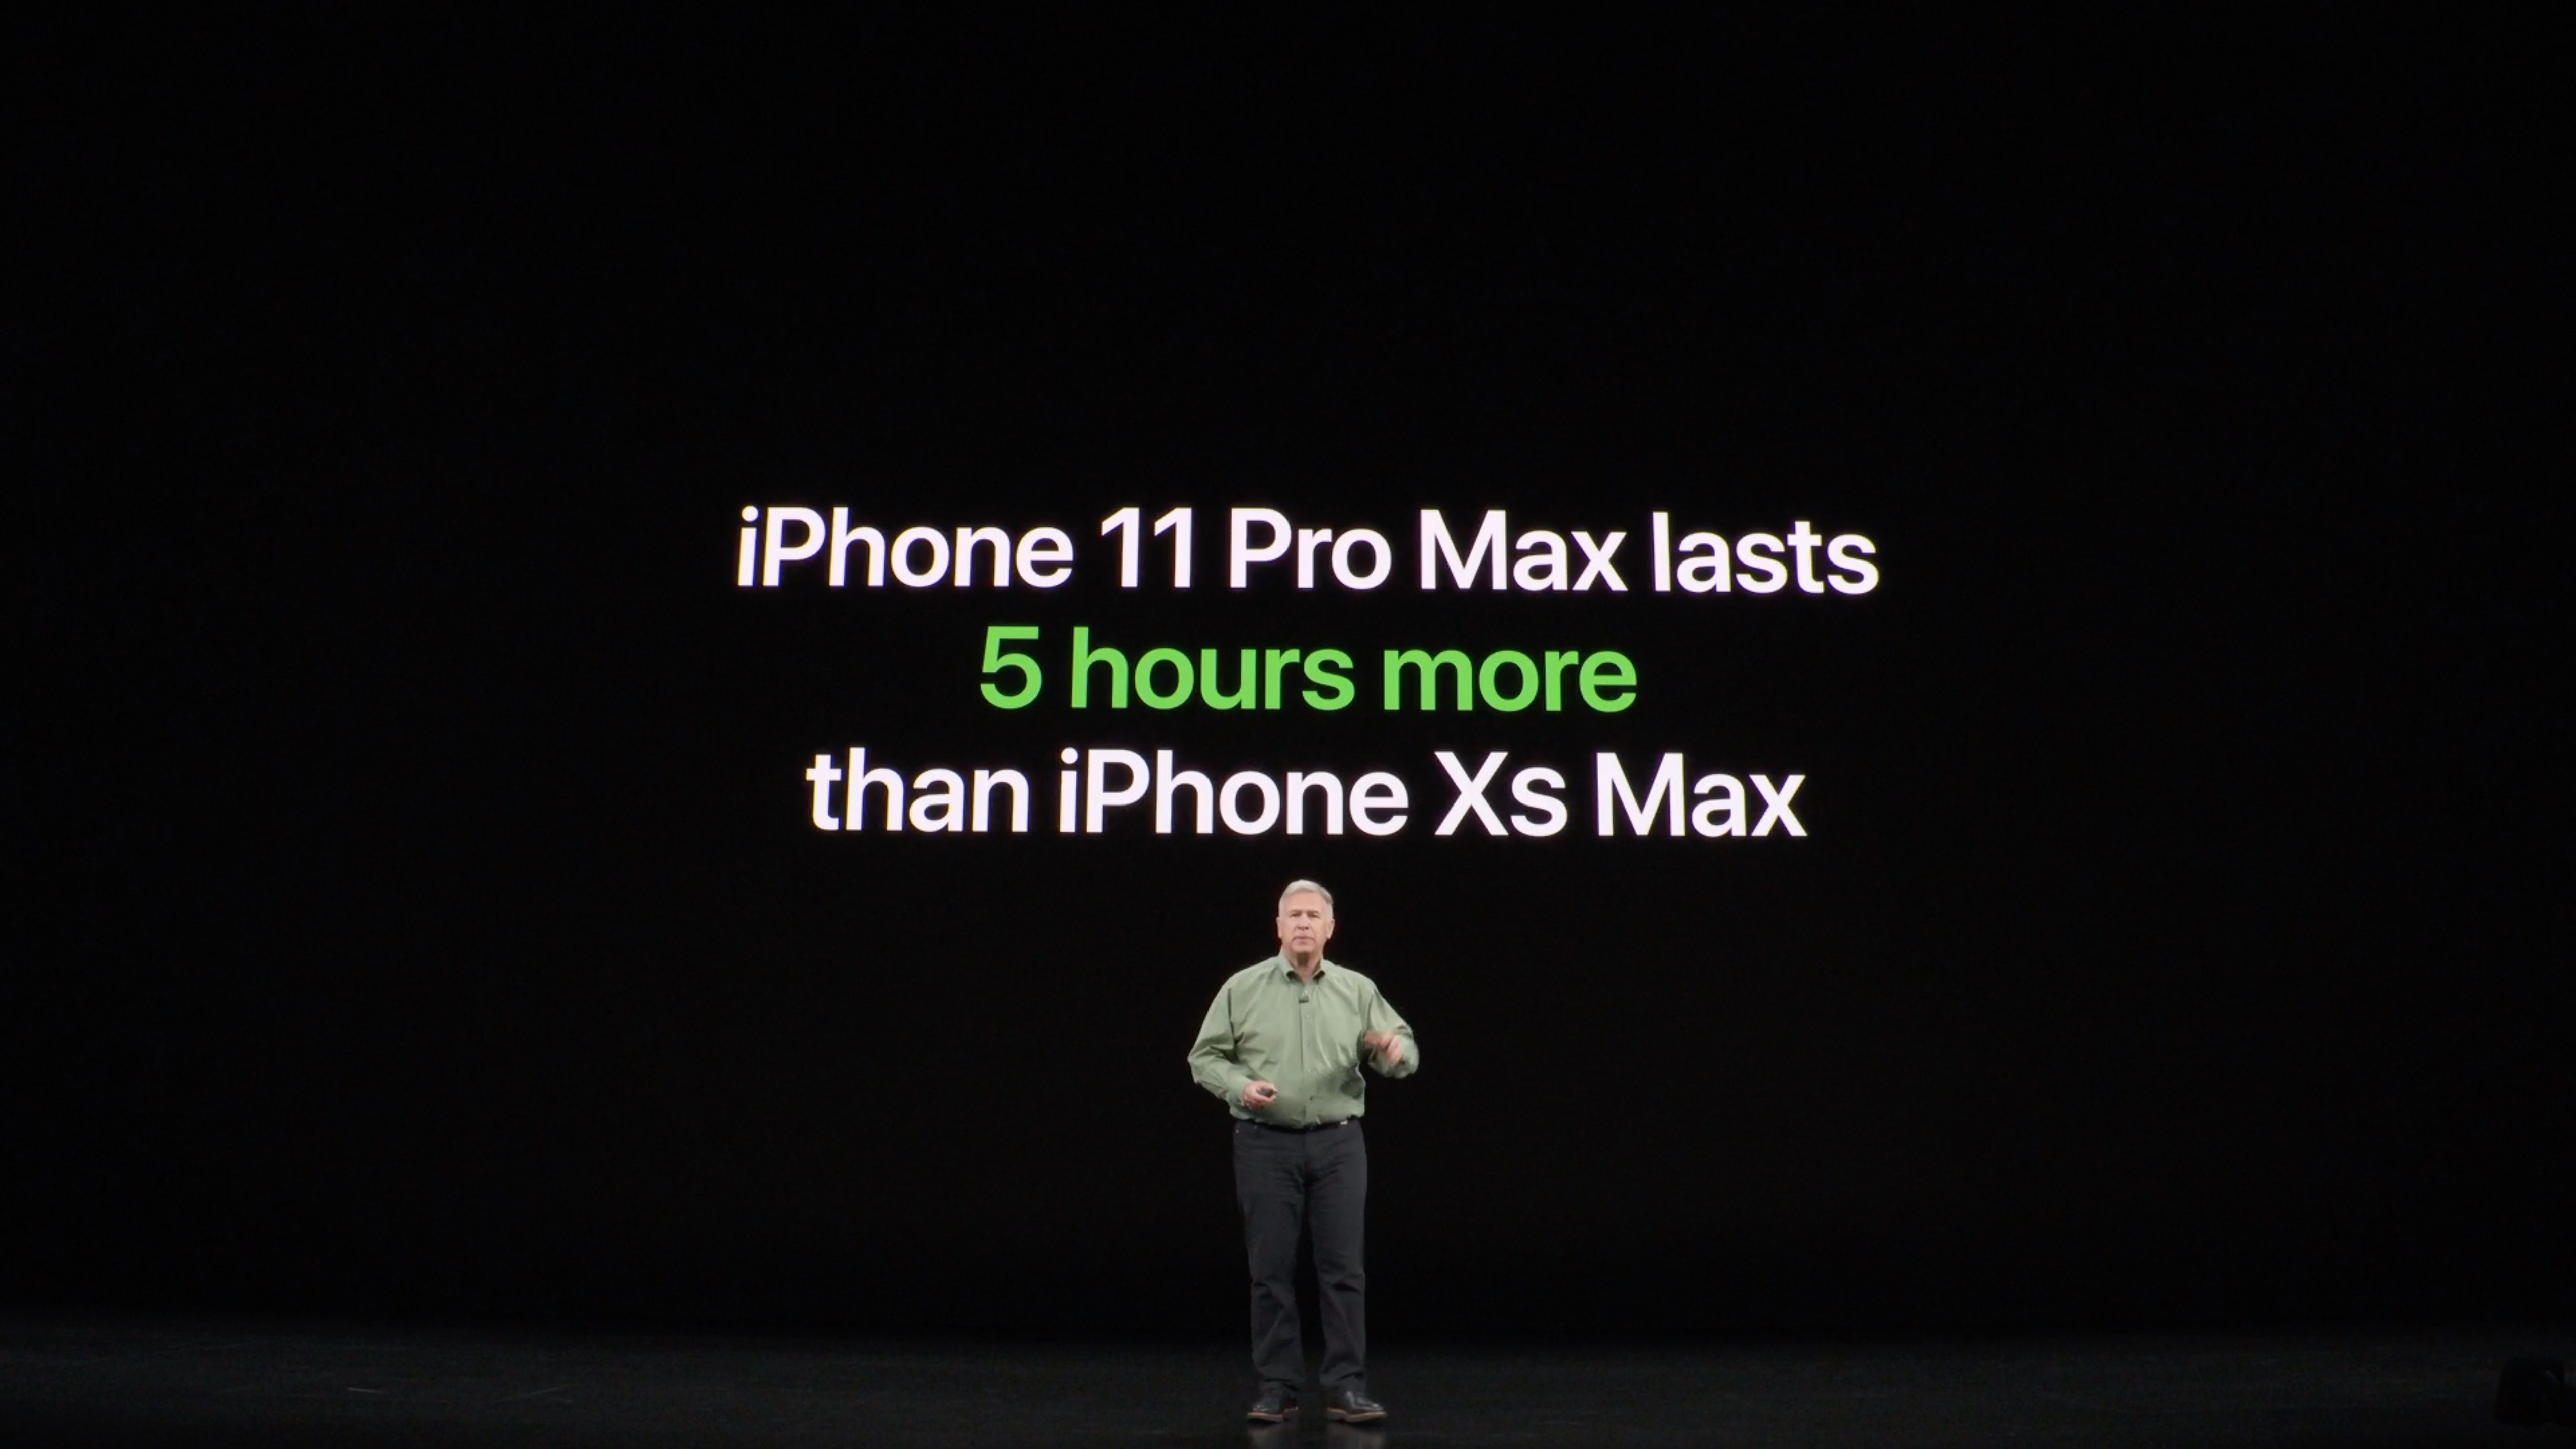 iPhone Pro Max battery life gets an extra 5 hours